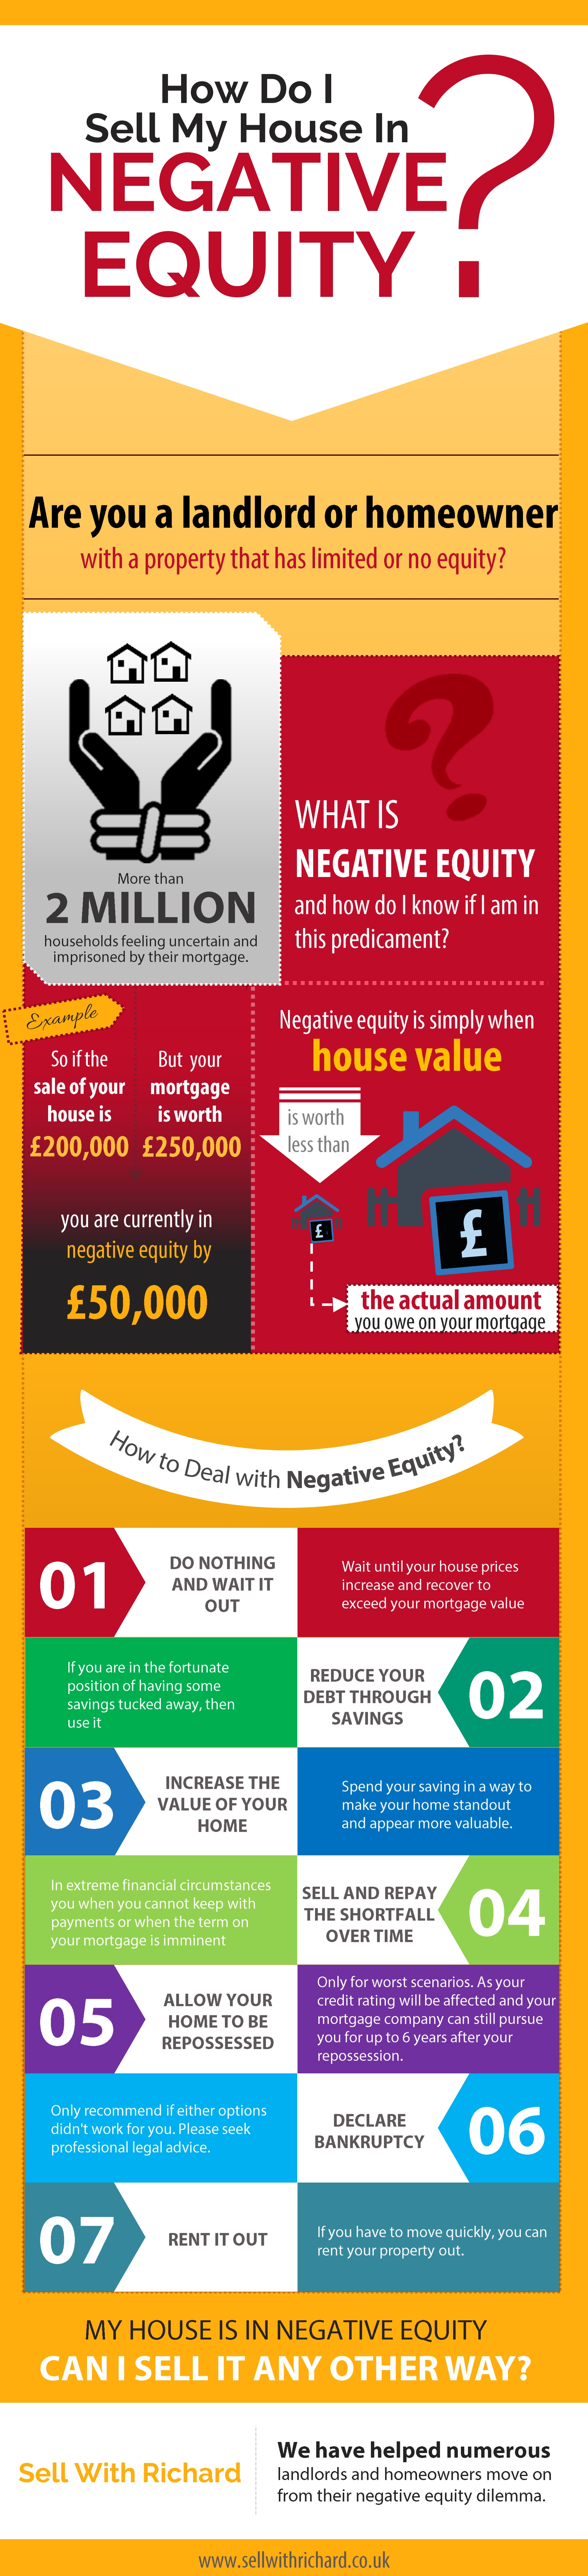 how-do-i-sell-my-house-in-negative-equity-finaljpg_page1